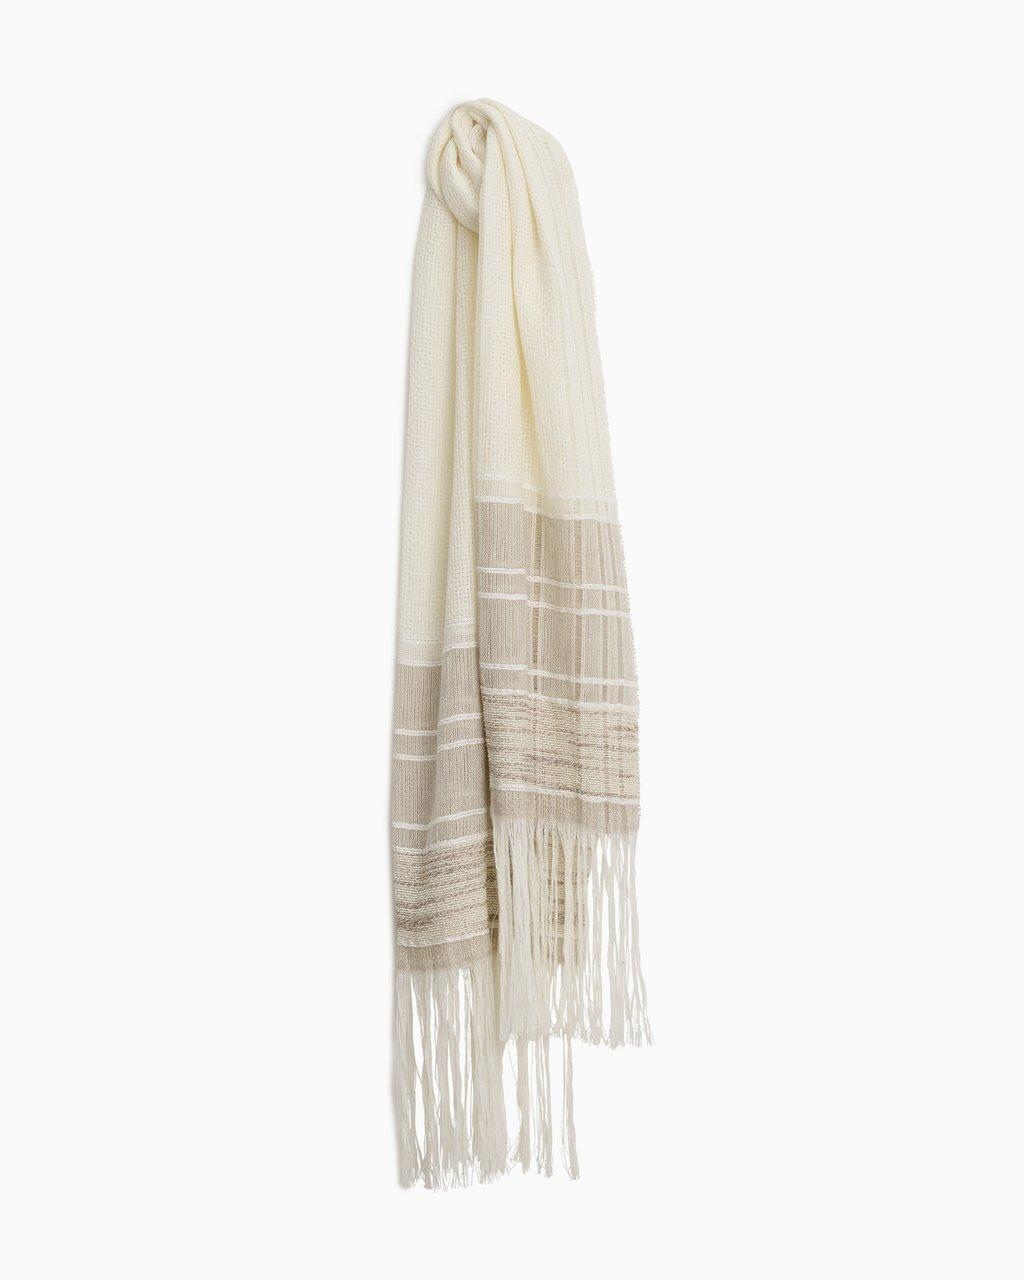 Kara Playa Linen Cotton Scarf